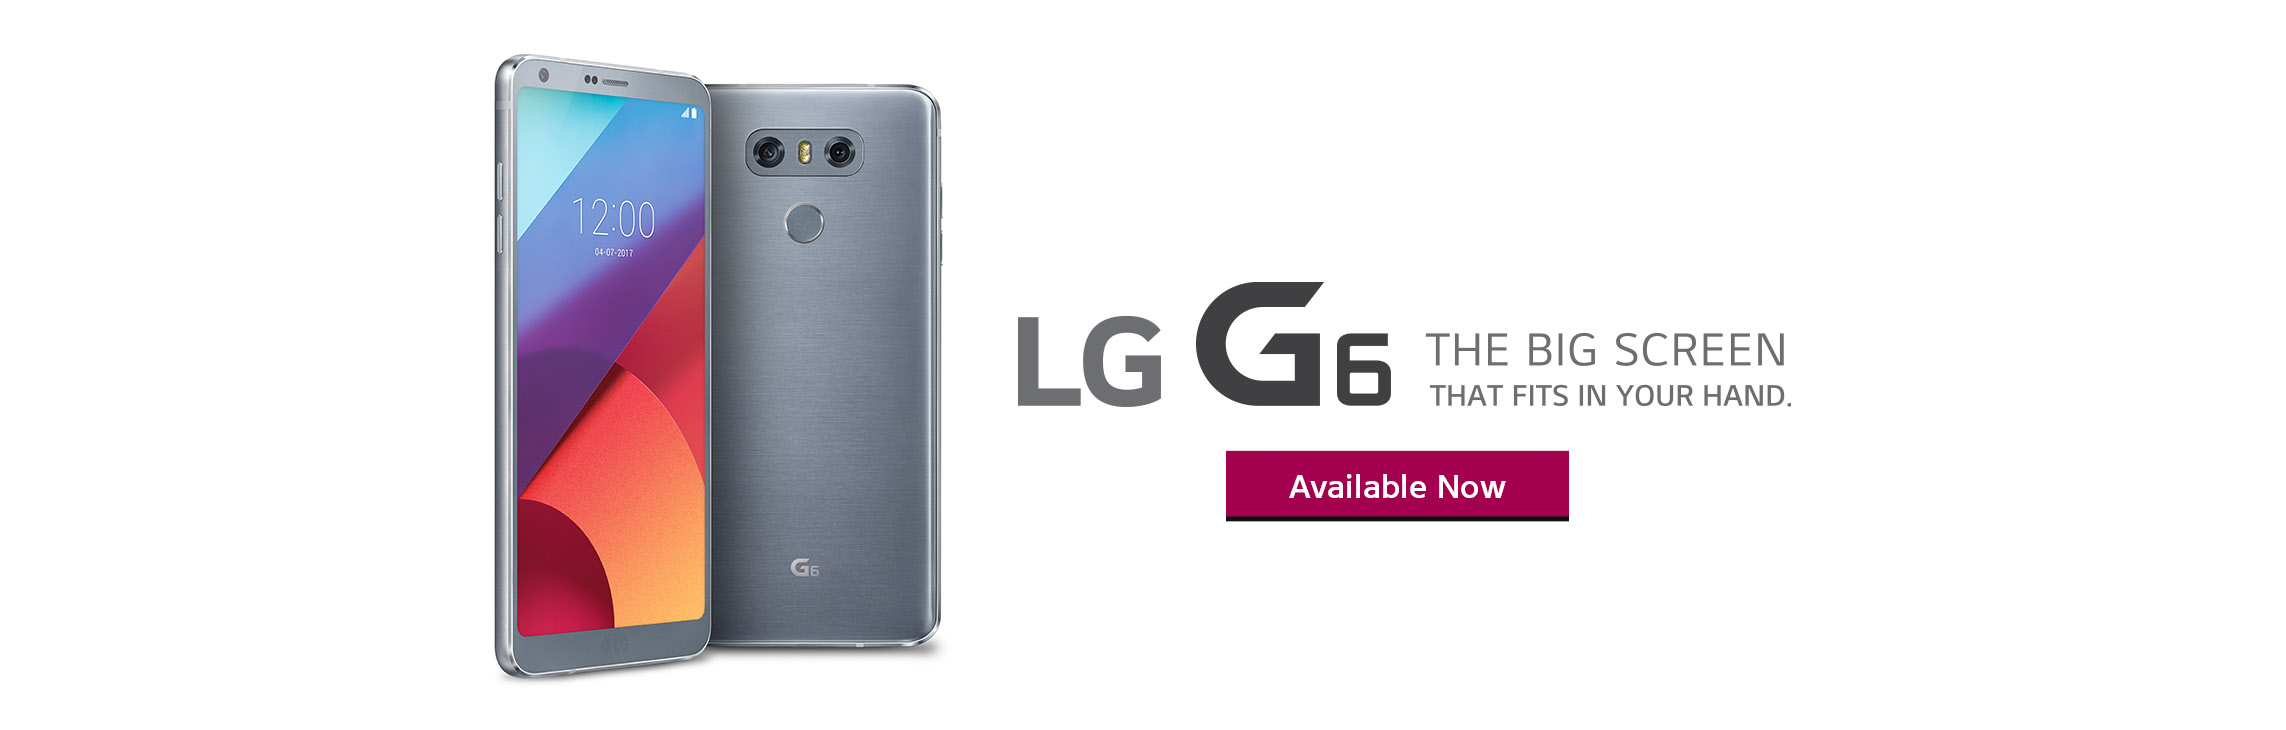 LG G6 - The big screen that fits in your hand. Available Now!